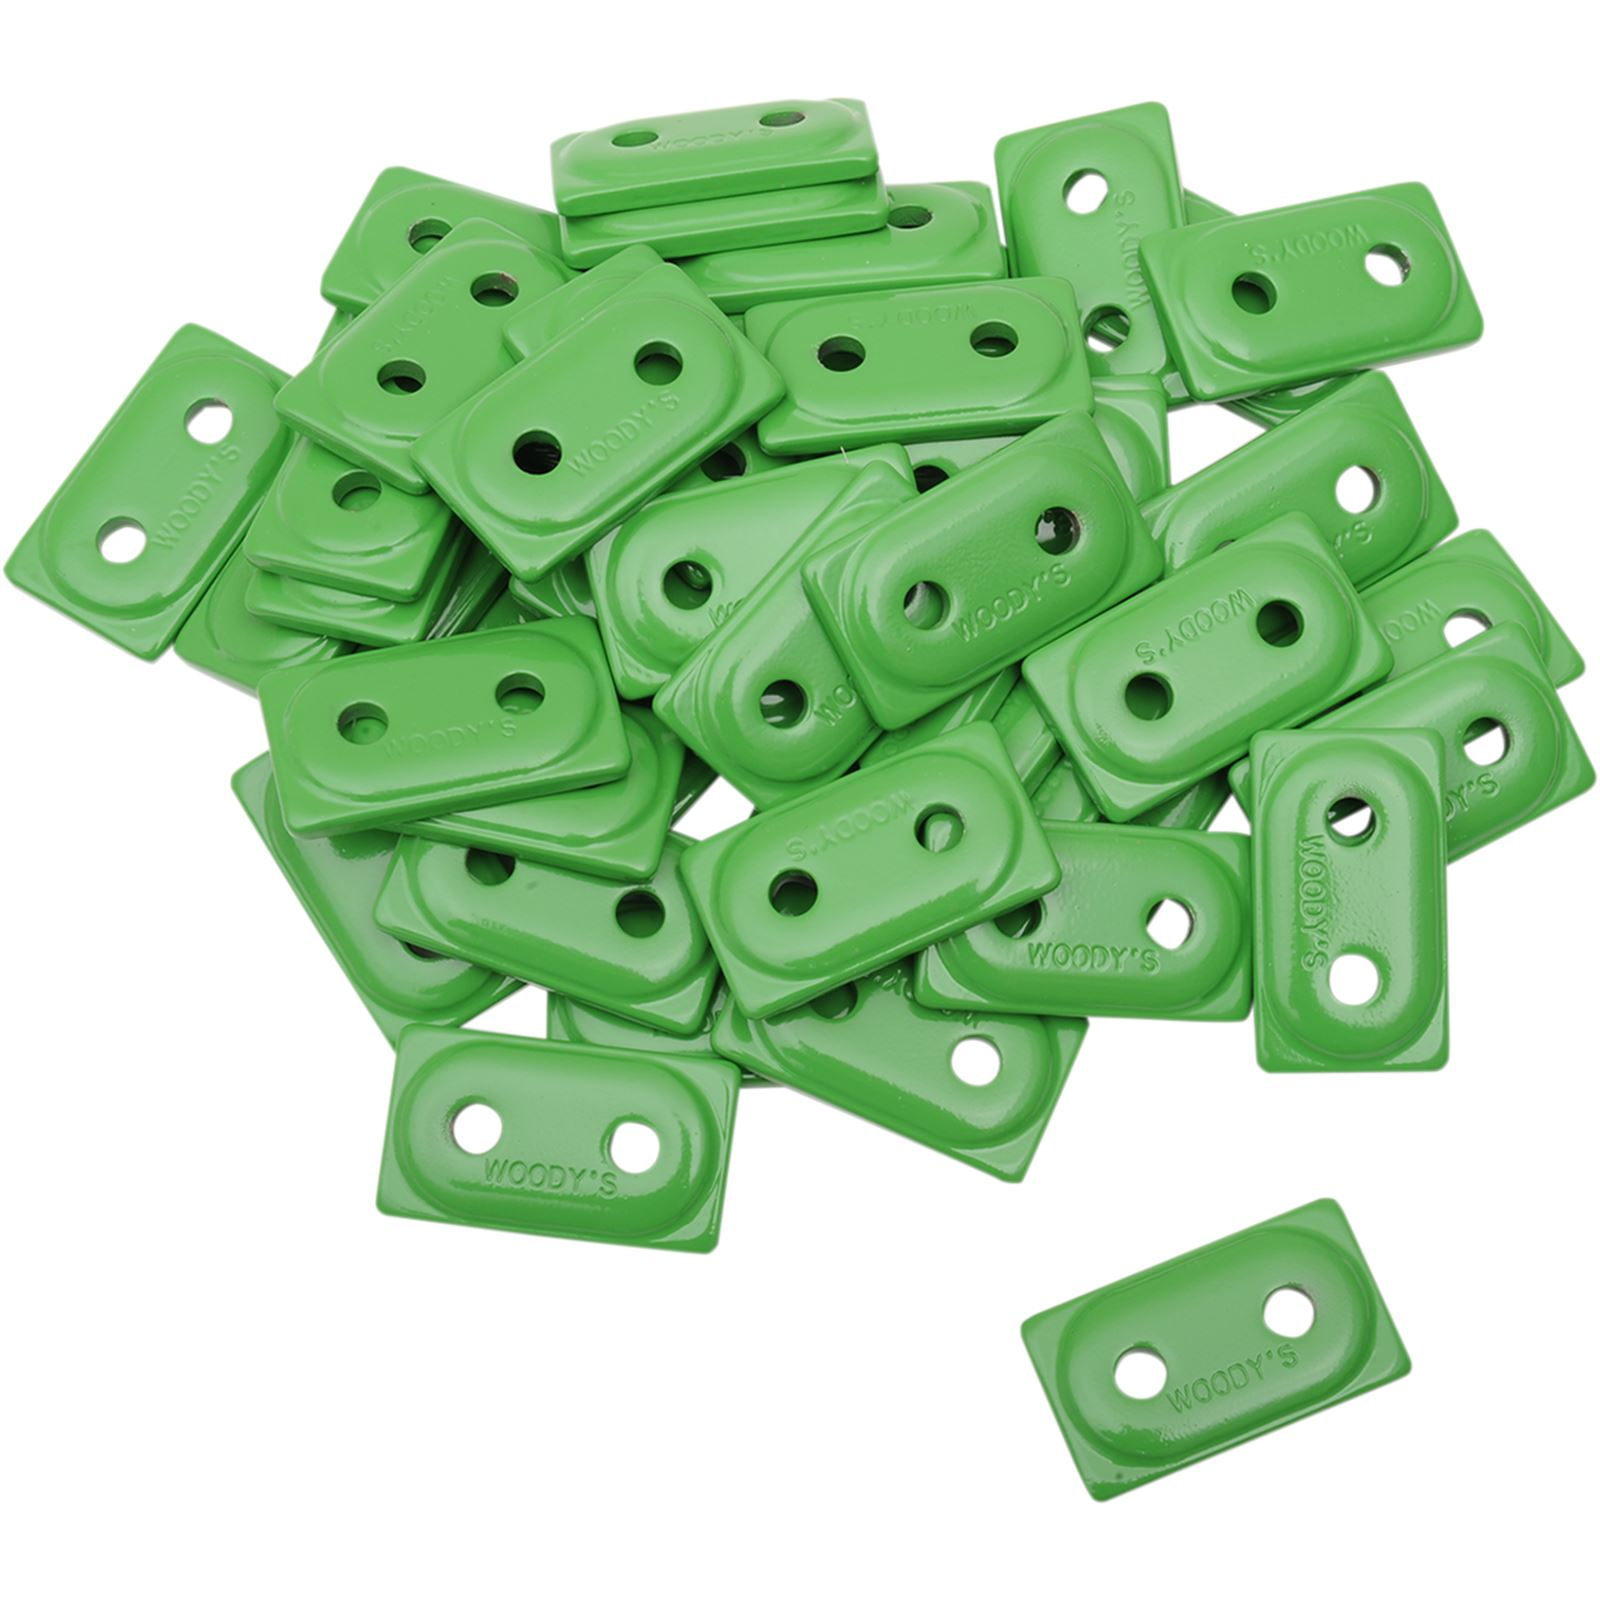 Woodys Support Plates - Green - 48 Pack